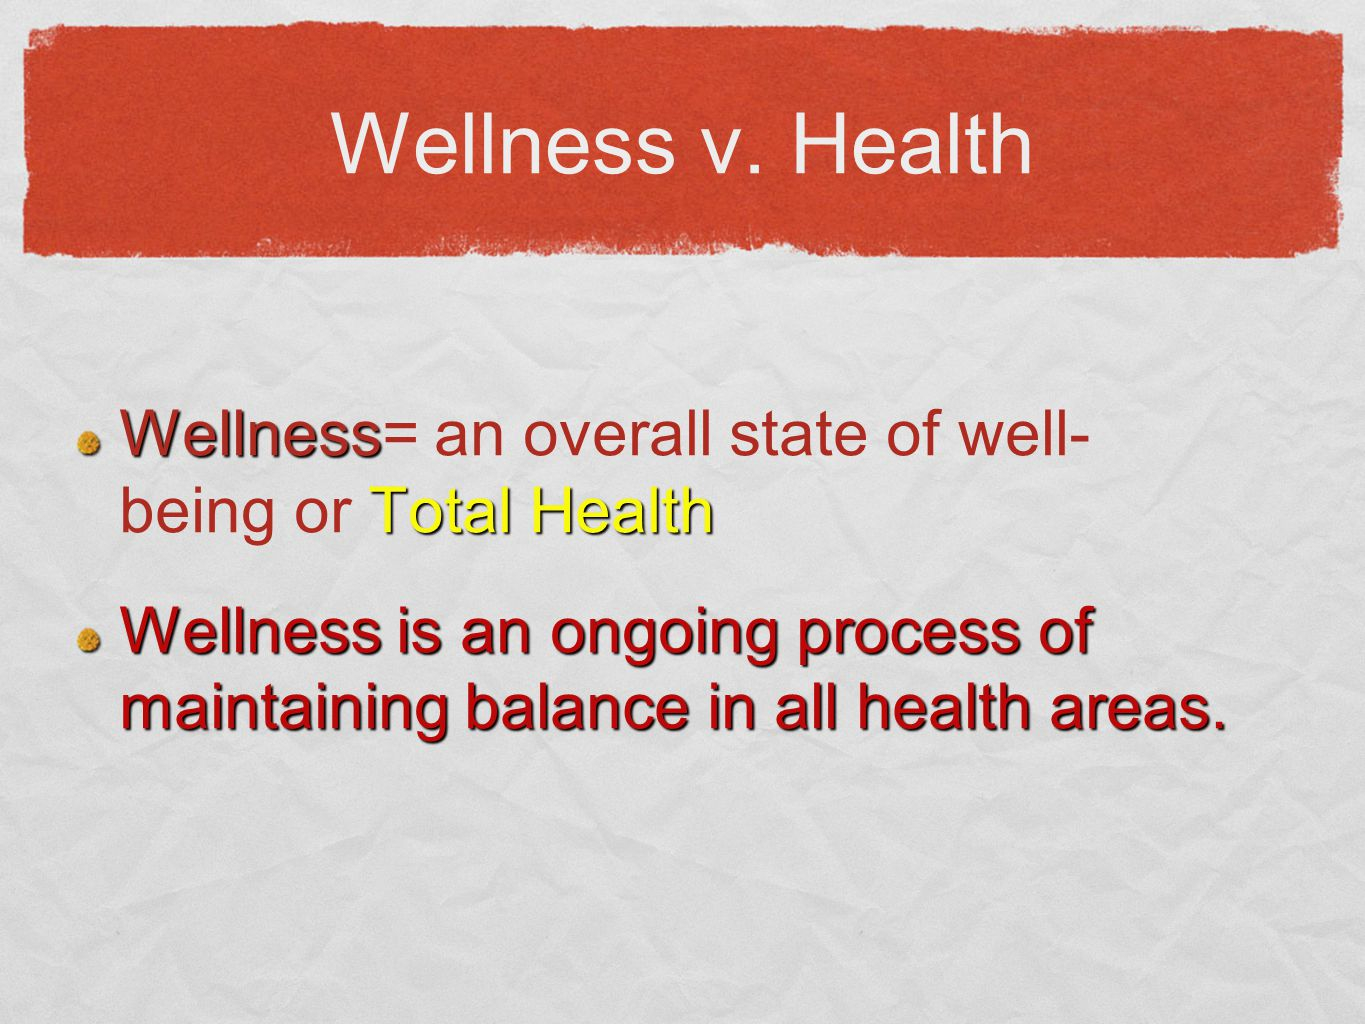 Wellness Total Health Wellness= an overall state of well- being or Total Health Wellness is an ongoing process of maintaining balance in all health areas.